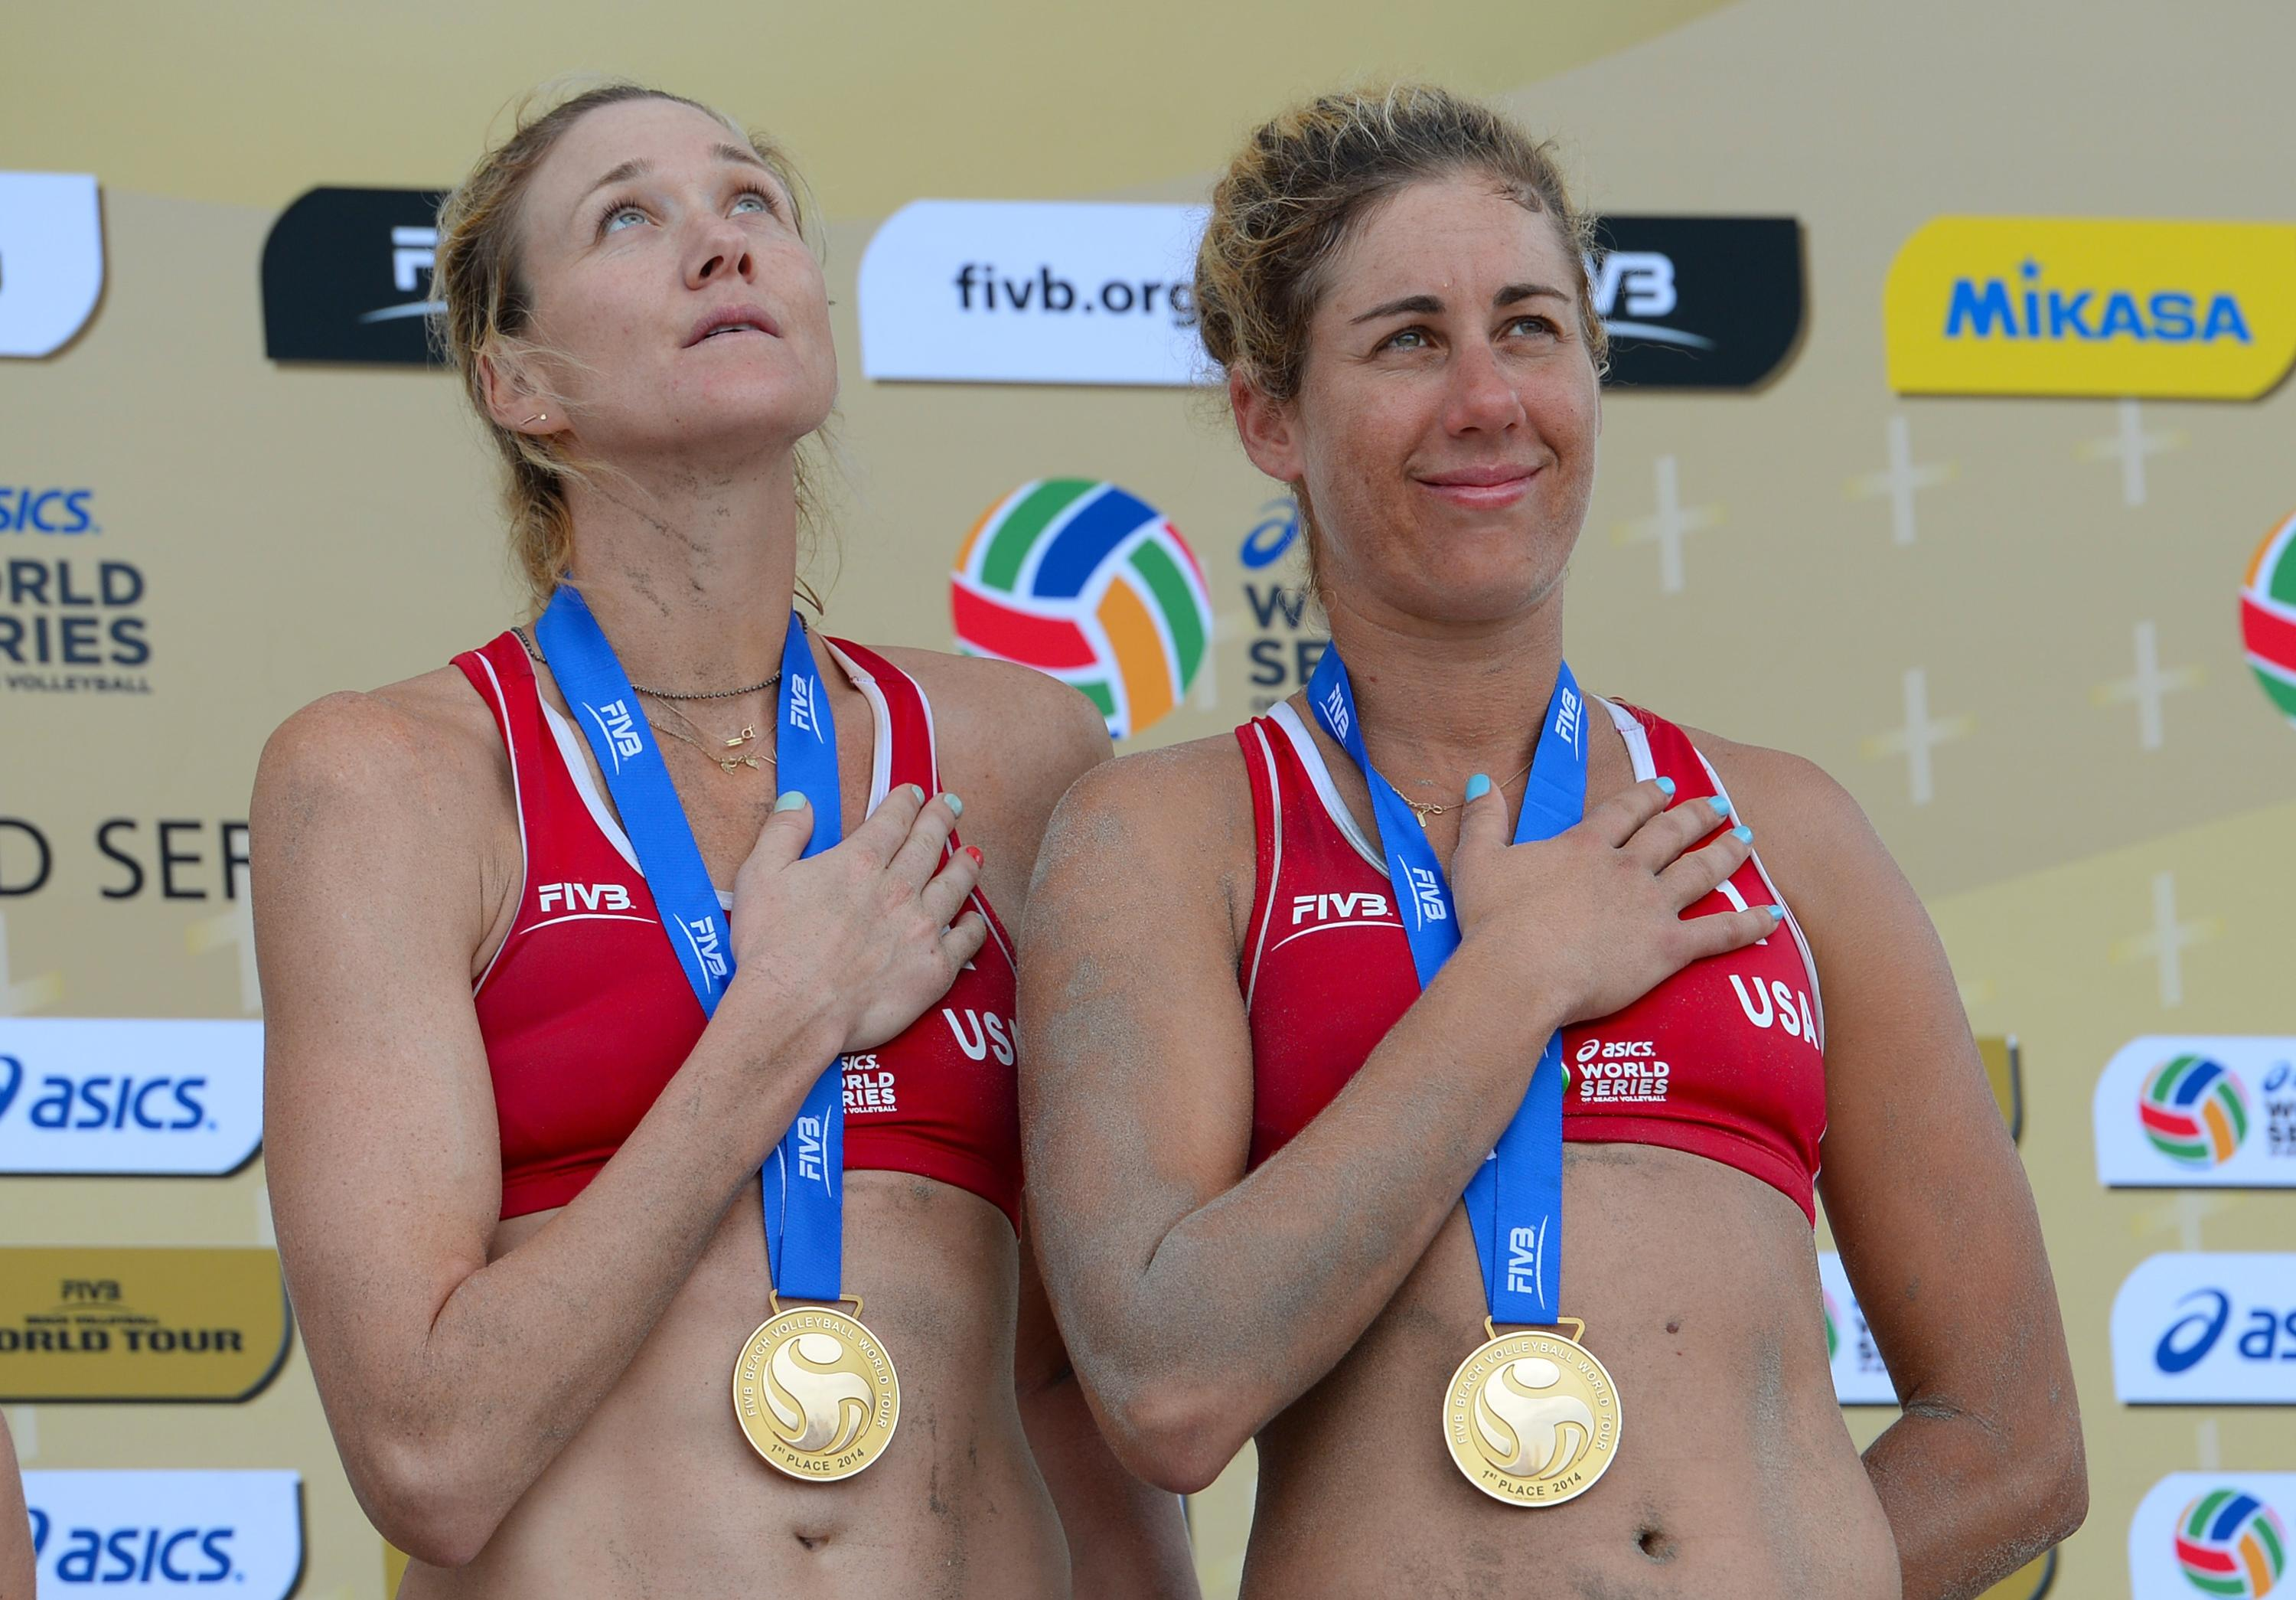 Still a year out, Kerri Walsh Jennings and April Ross are ready for Rio